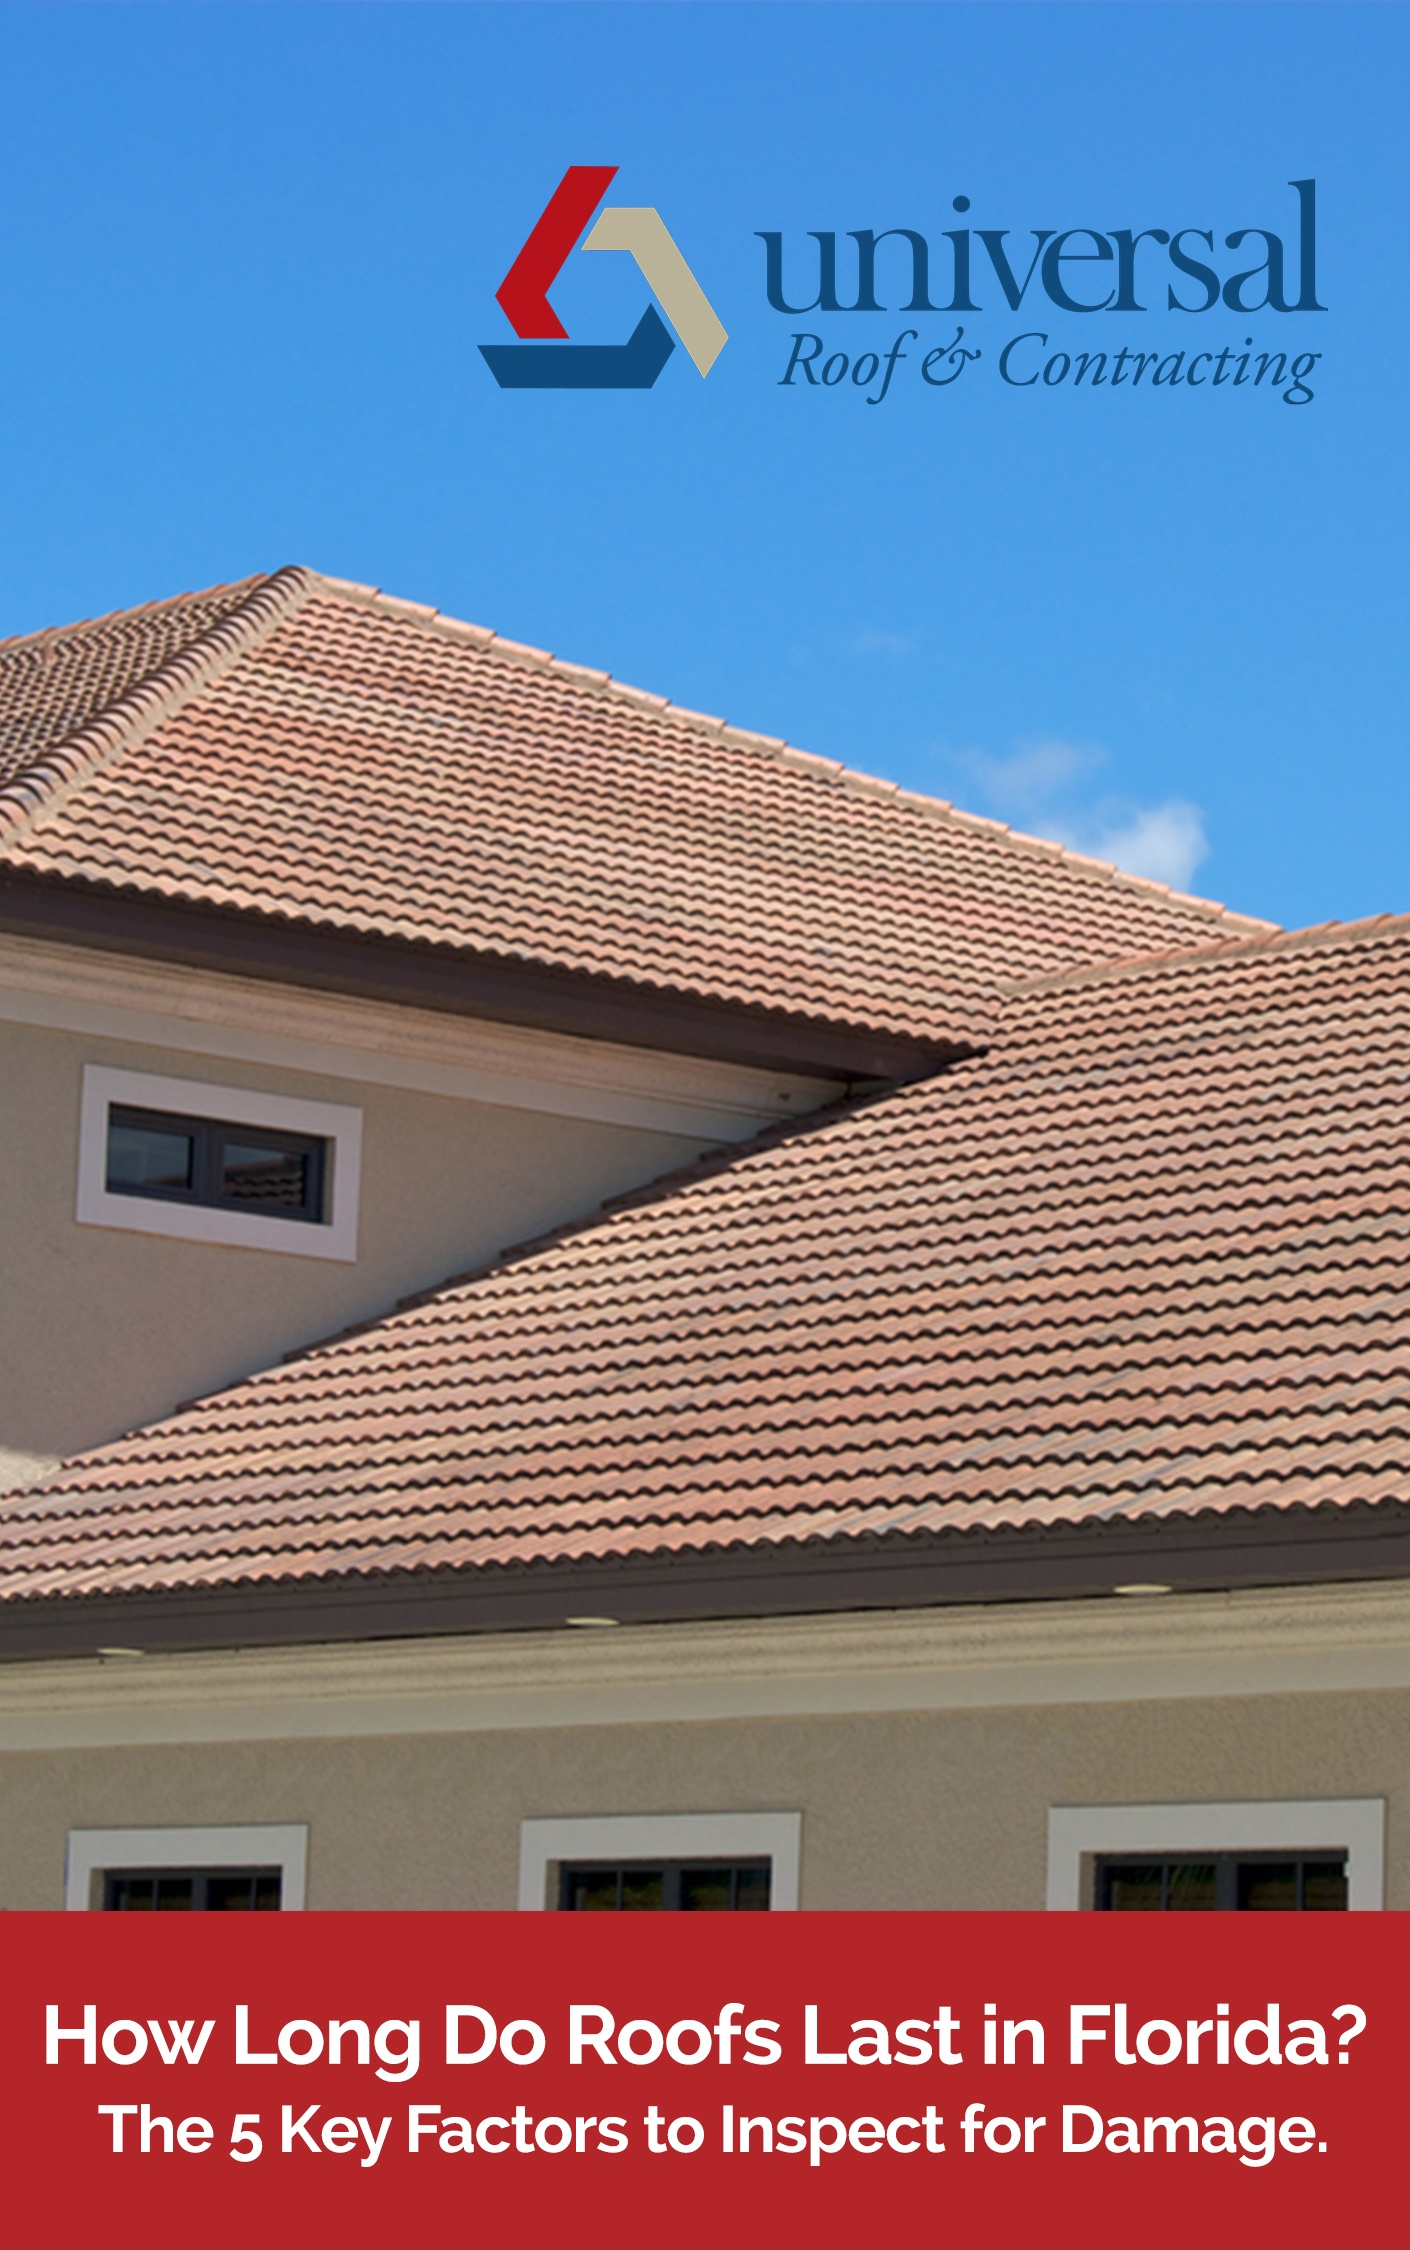 free download how long do roofs last in florida